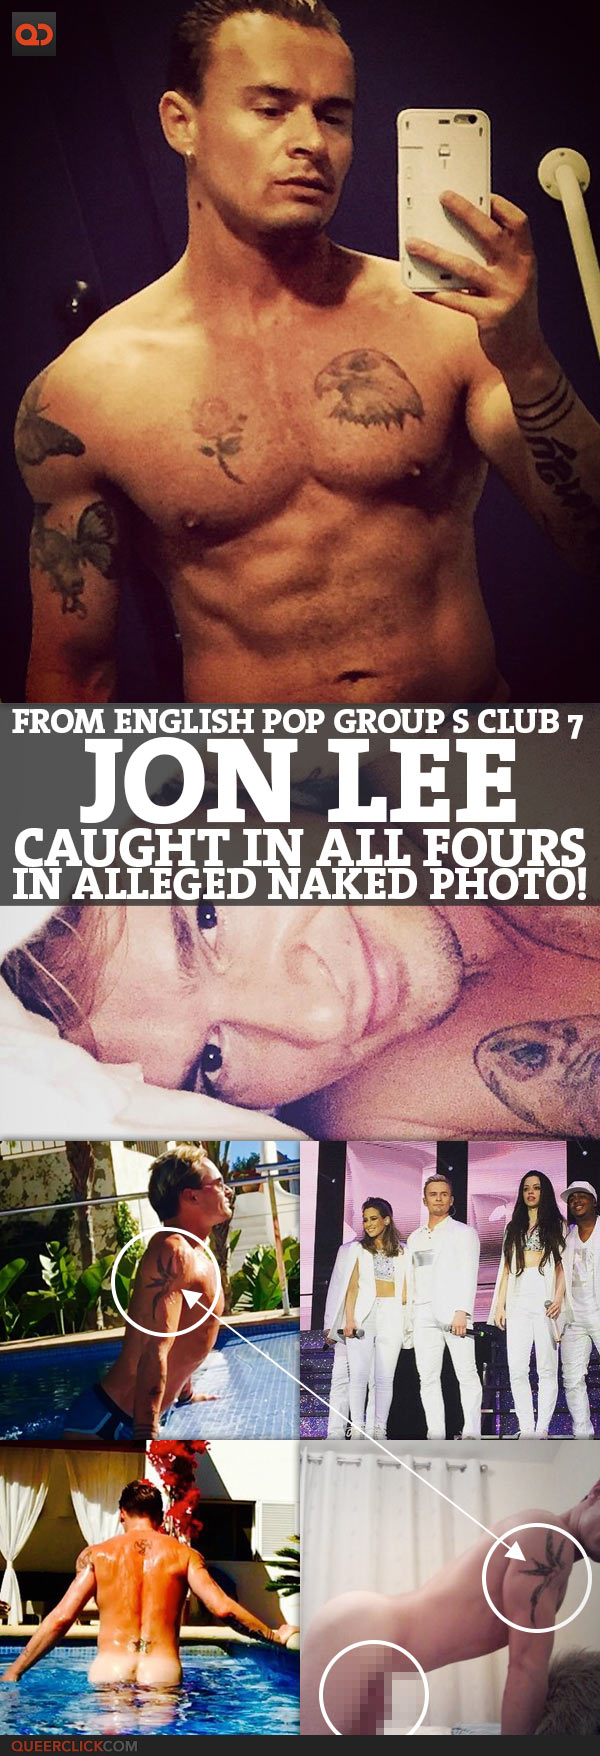 Jon Lee, From English Pop Group S Club 7, Caught On All Fours In Alleged Naked Photo!